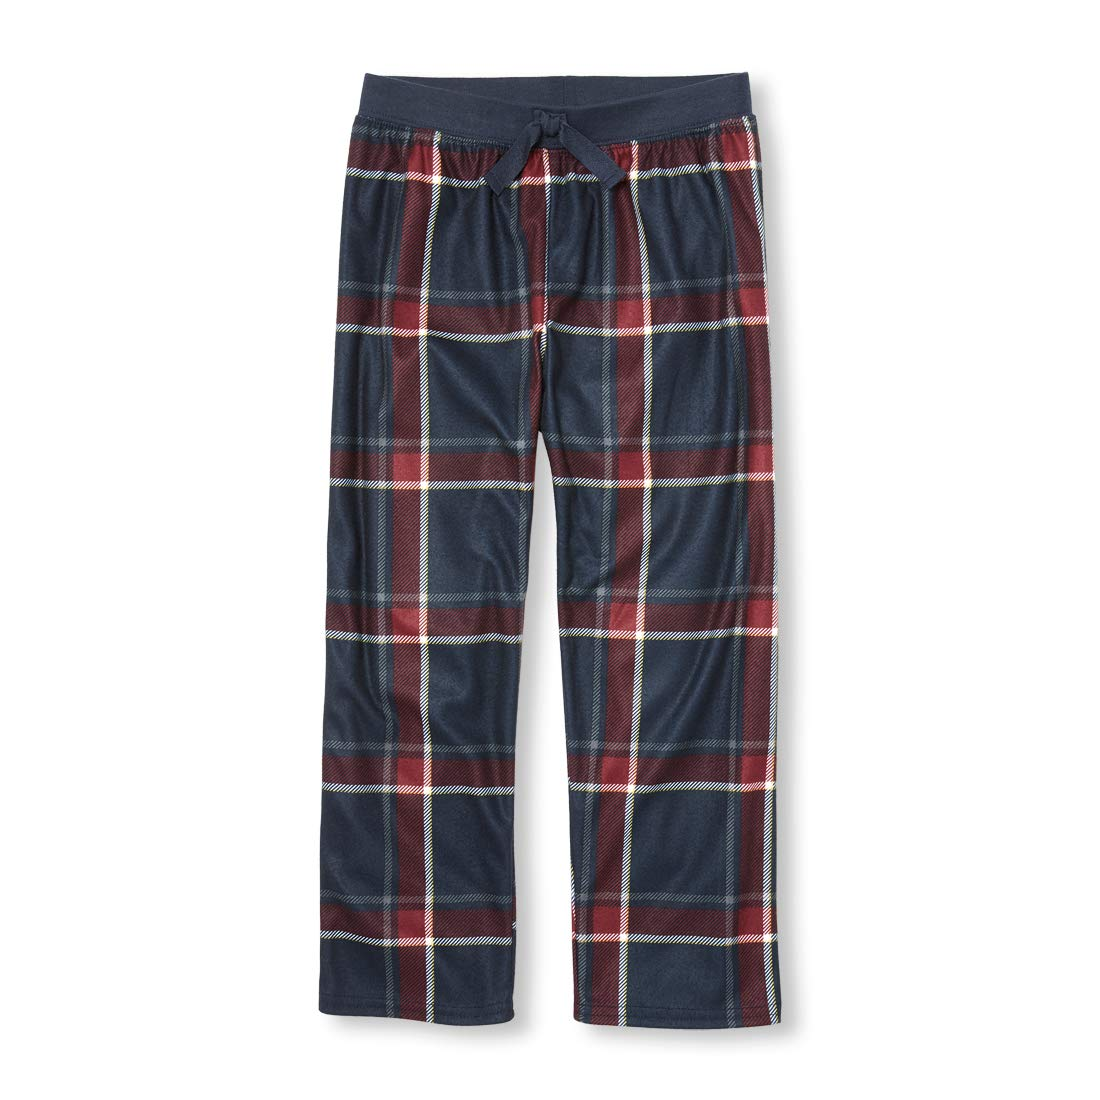 The Children's Place Big Boys' Pajama Pant The Children's Place 2108549